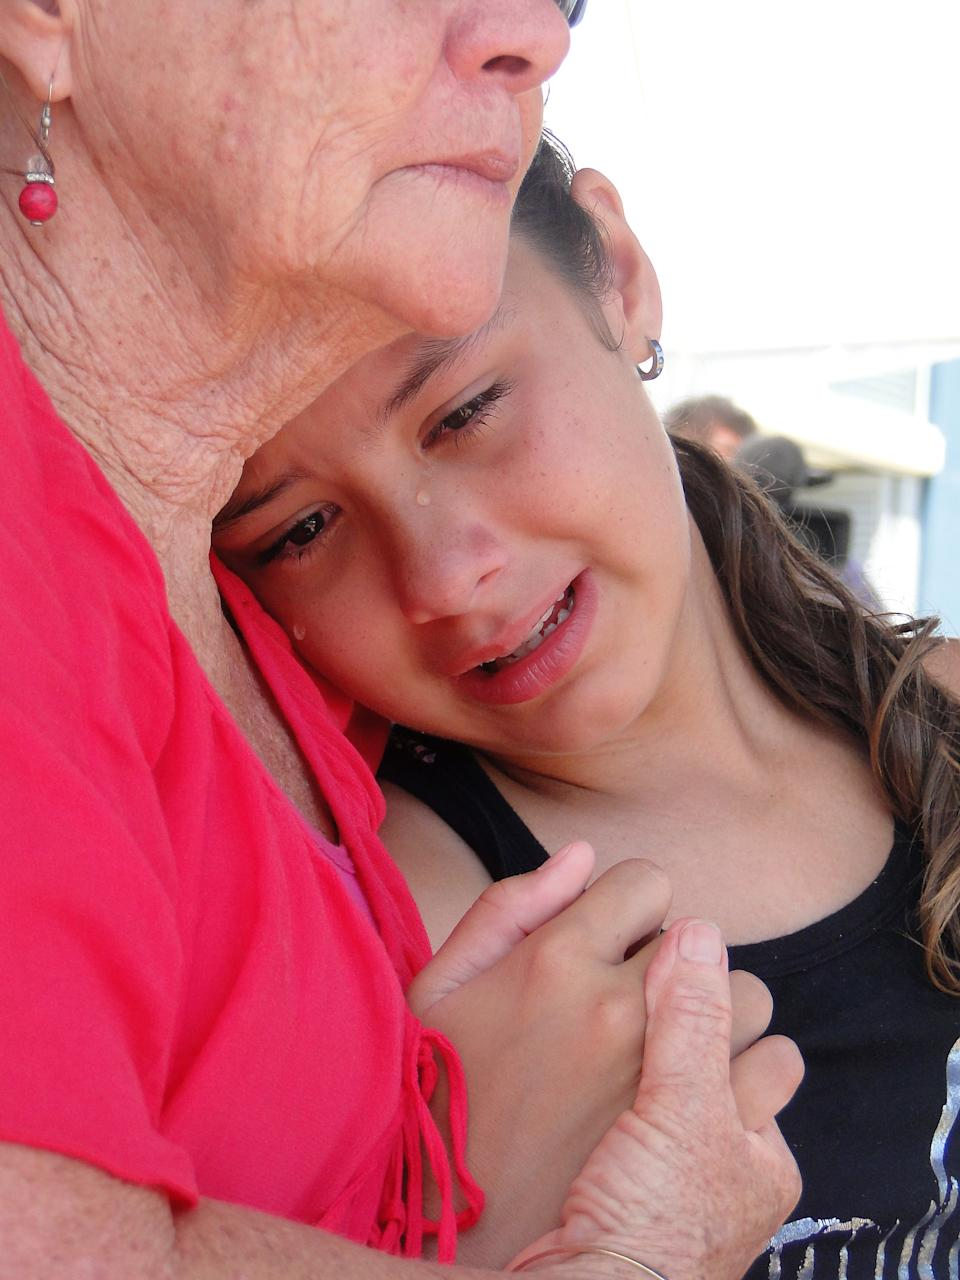 Jordan McGuinness's sister Montana sobs after his death. She was 10 years old when the accident occurred.